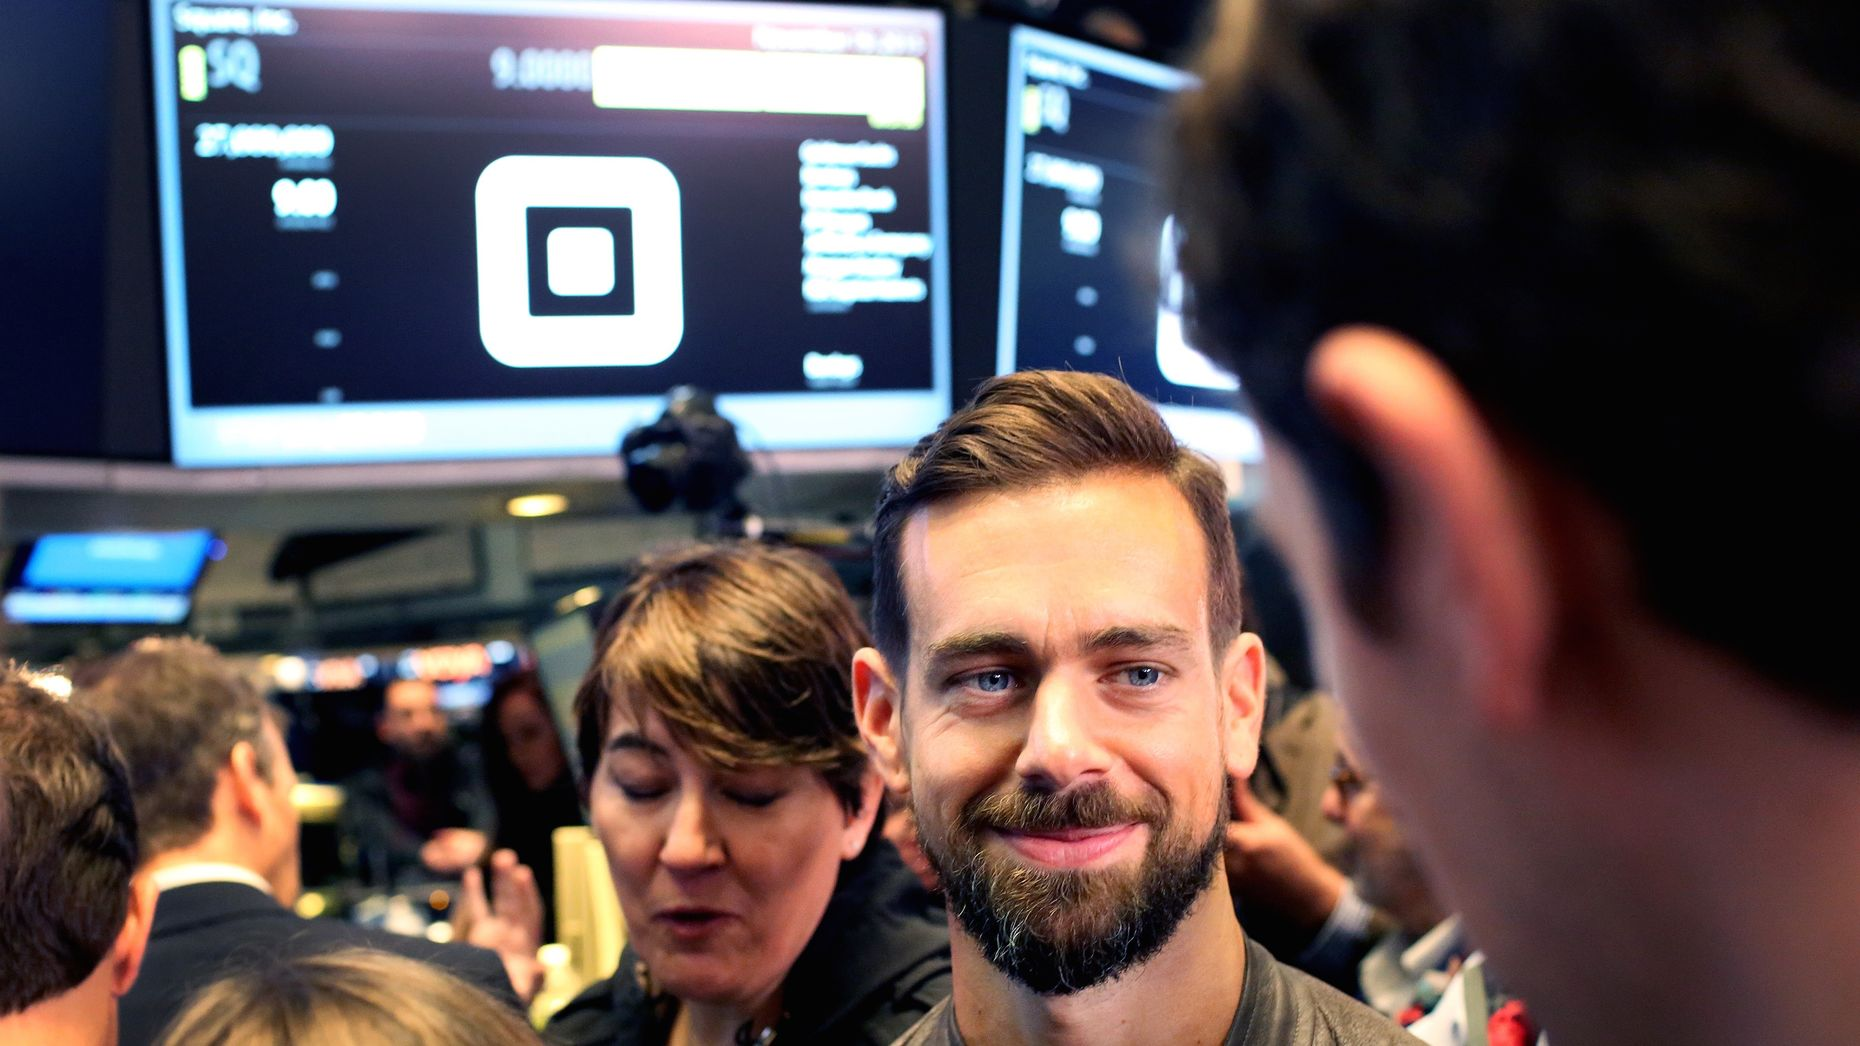 Square CEO  Jack Dorsey at the New York Stock Exchange for Square's opening day on the stockmarket. Photo by Bloomberg.